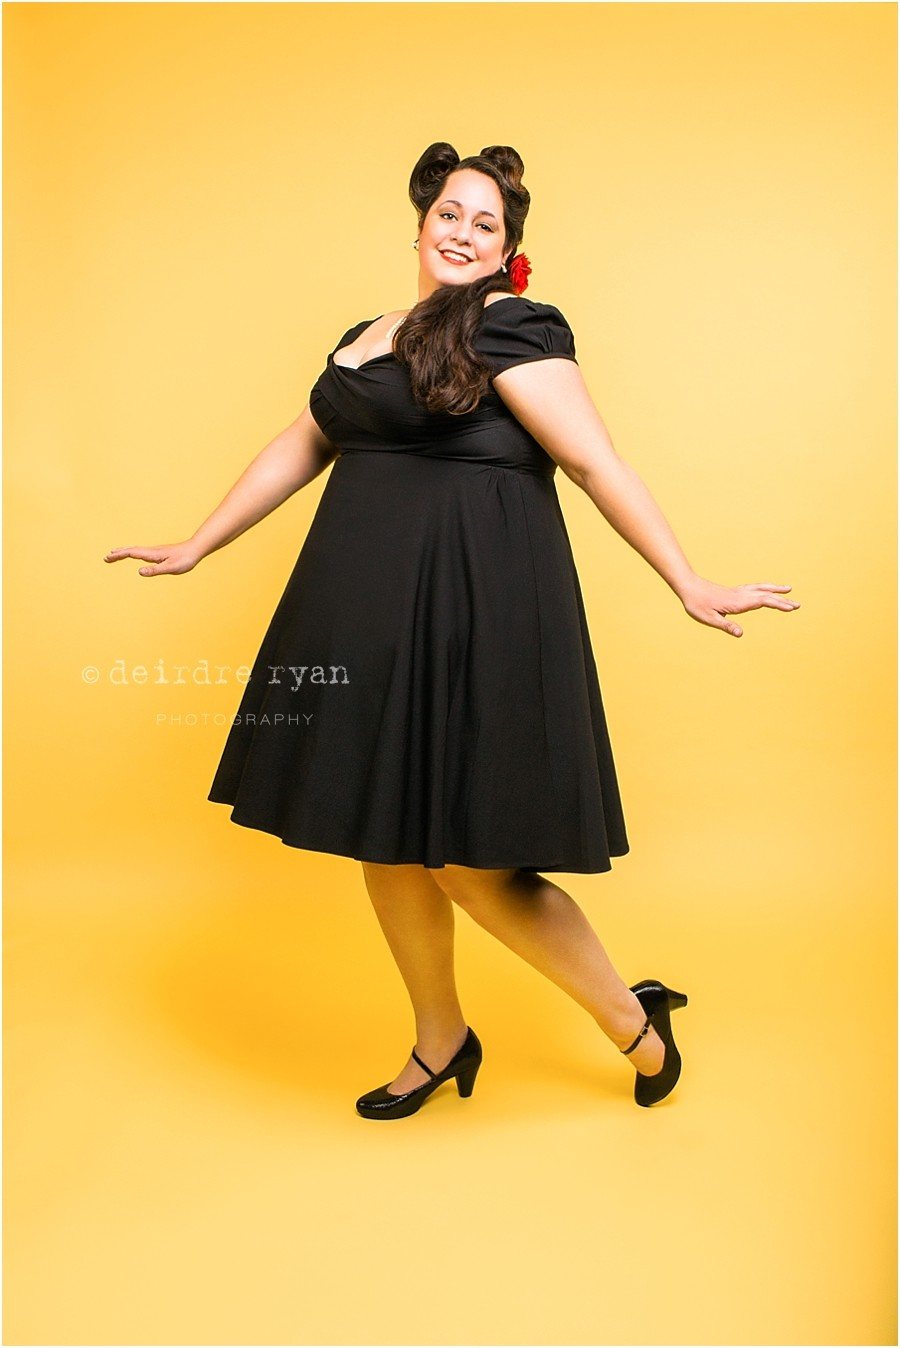 PINUP_DeirdreRyanPhotography_0006